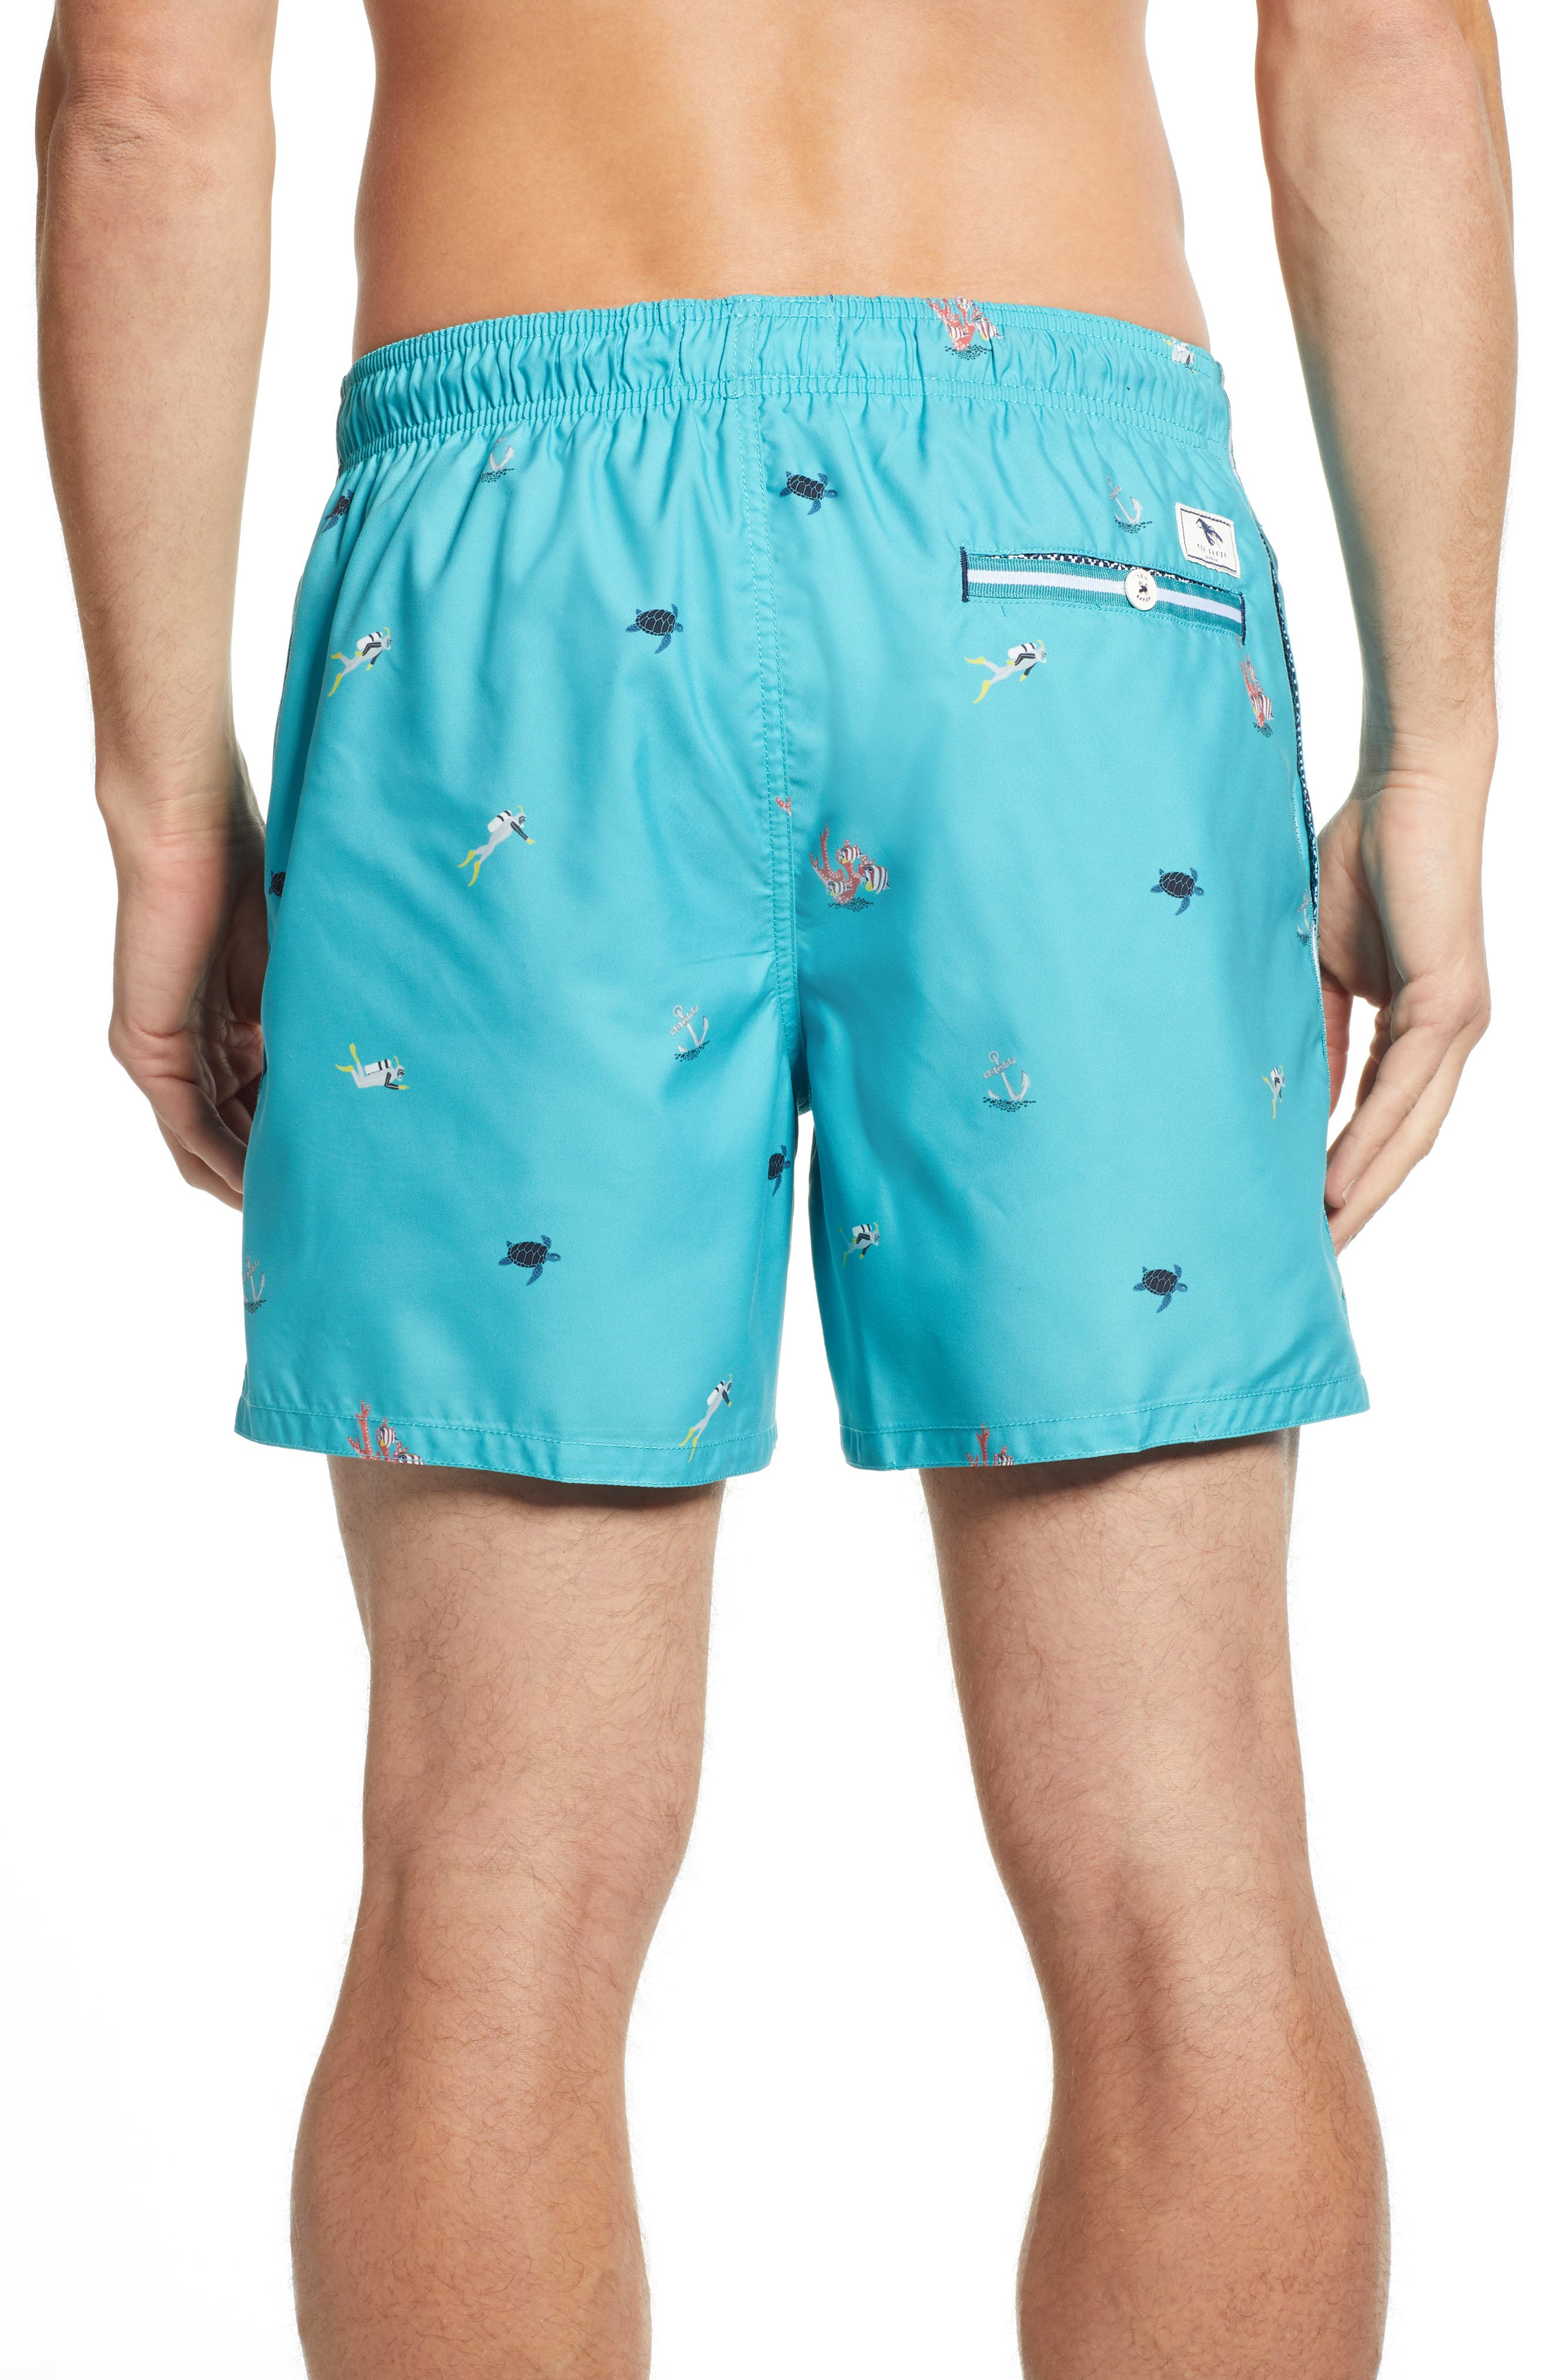 d8b9fb0401dfc5 Swimwear Ted Baker London for Men